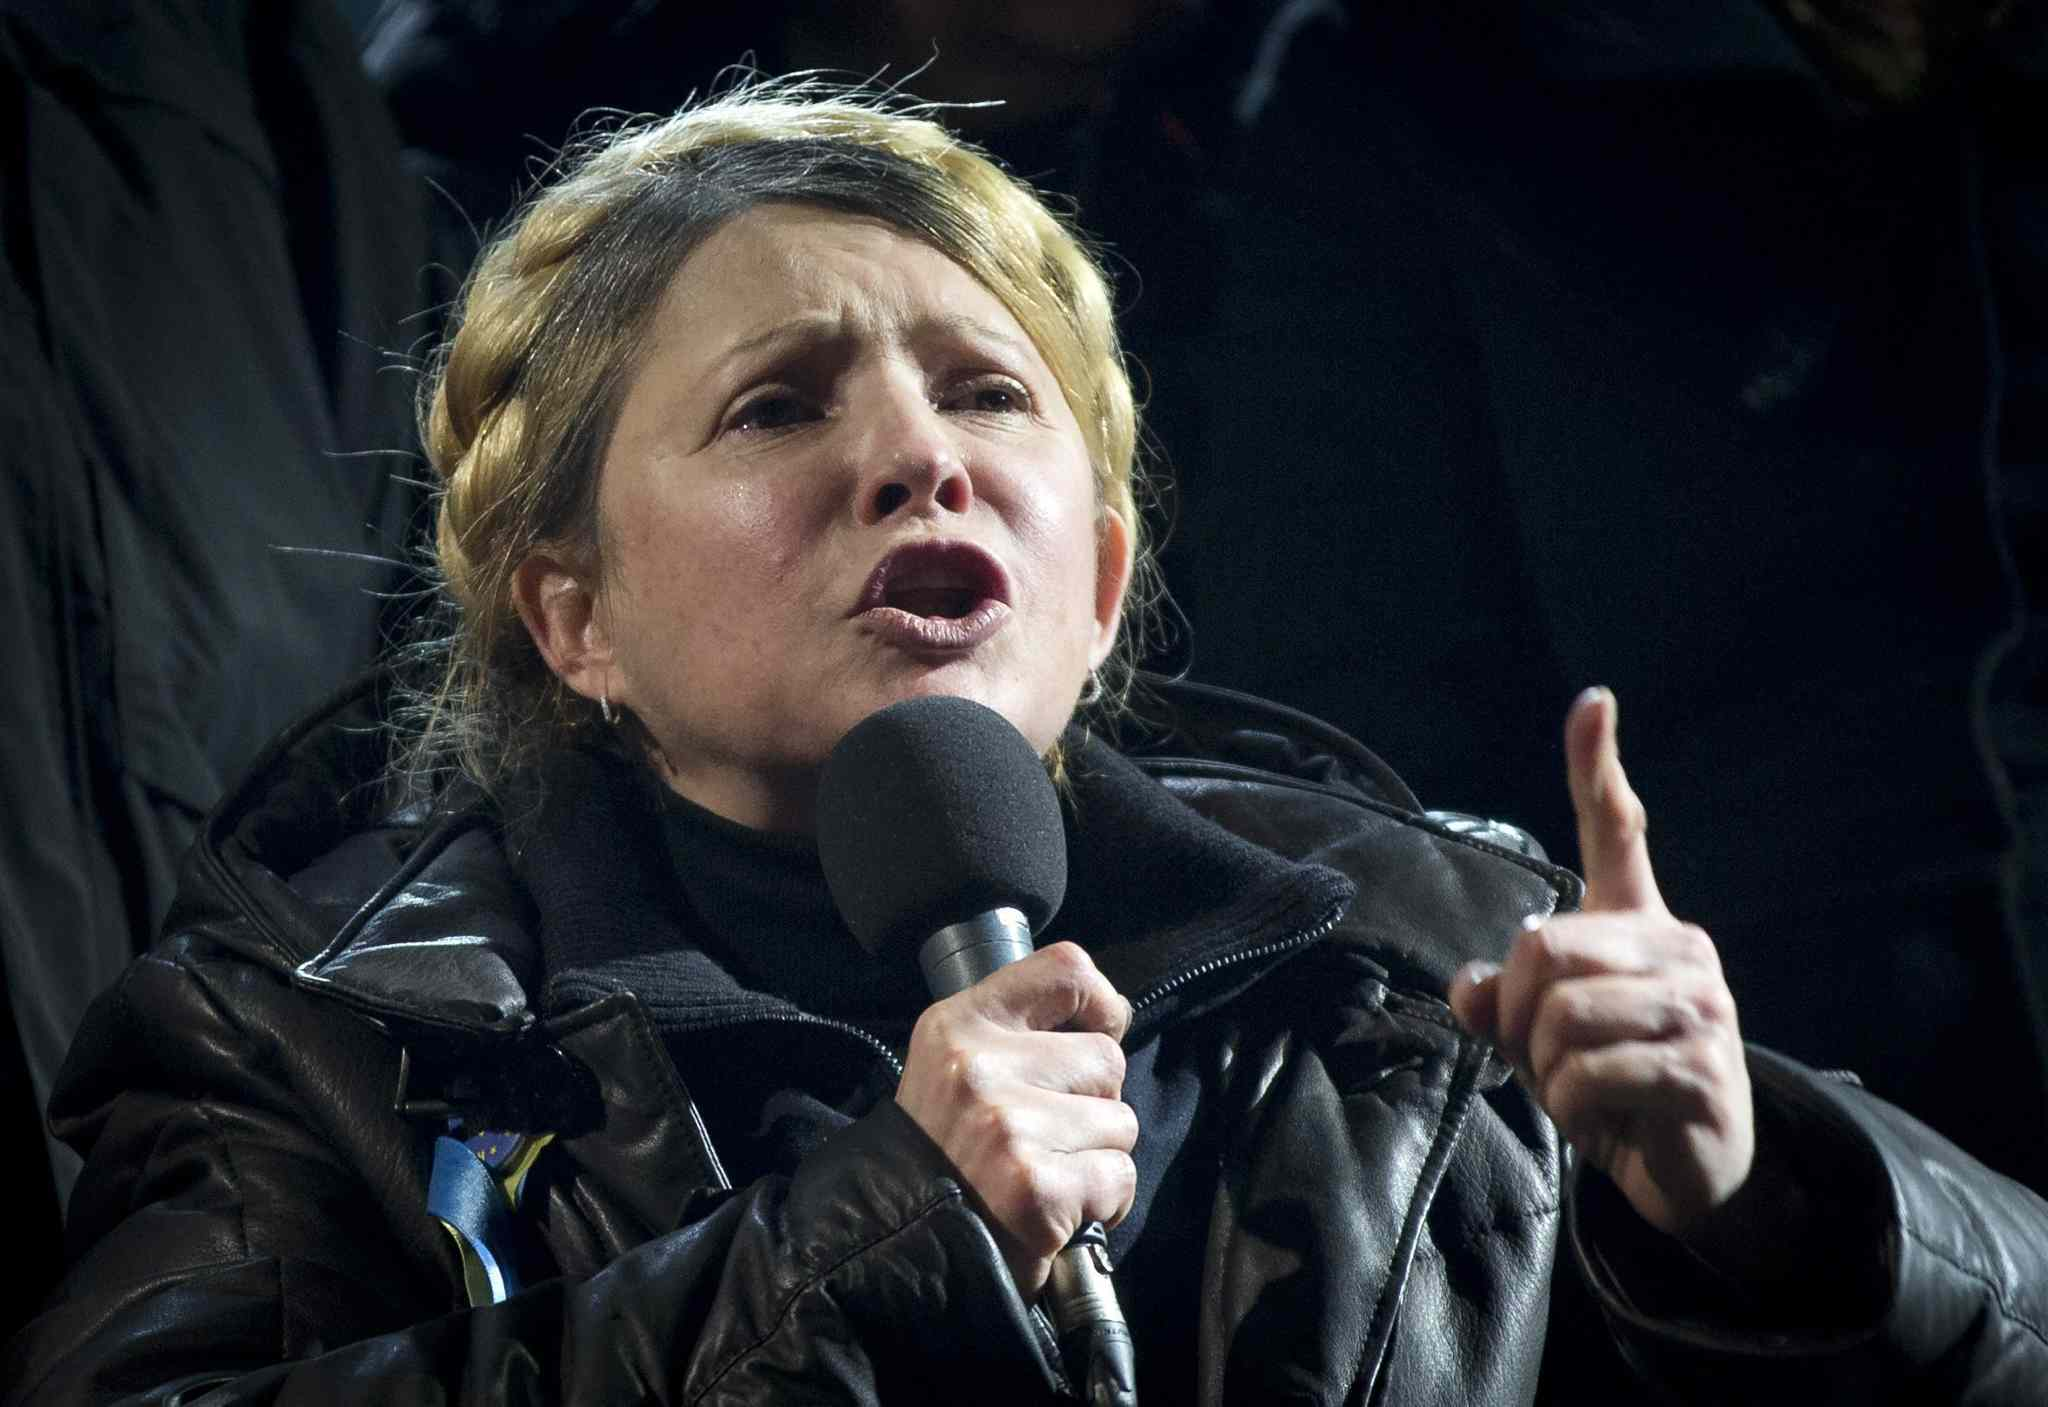 Former Ukrainian Prime Minister Yulia Tymoshenko addresses the crowd in central Kyiv, Ukraine on Saturday, hours after being released from prison, former Ukrainian prime minister and opposition icon Yulia Tymoshenko praised the demonstrators killed in violence this week as heroes.